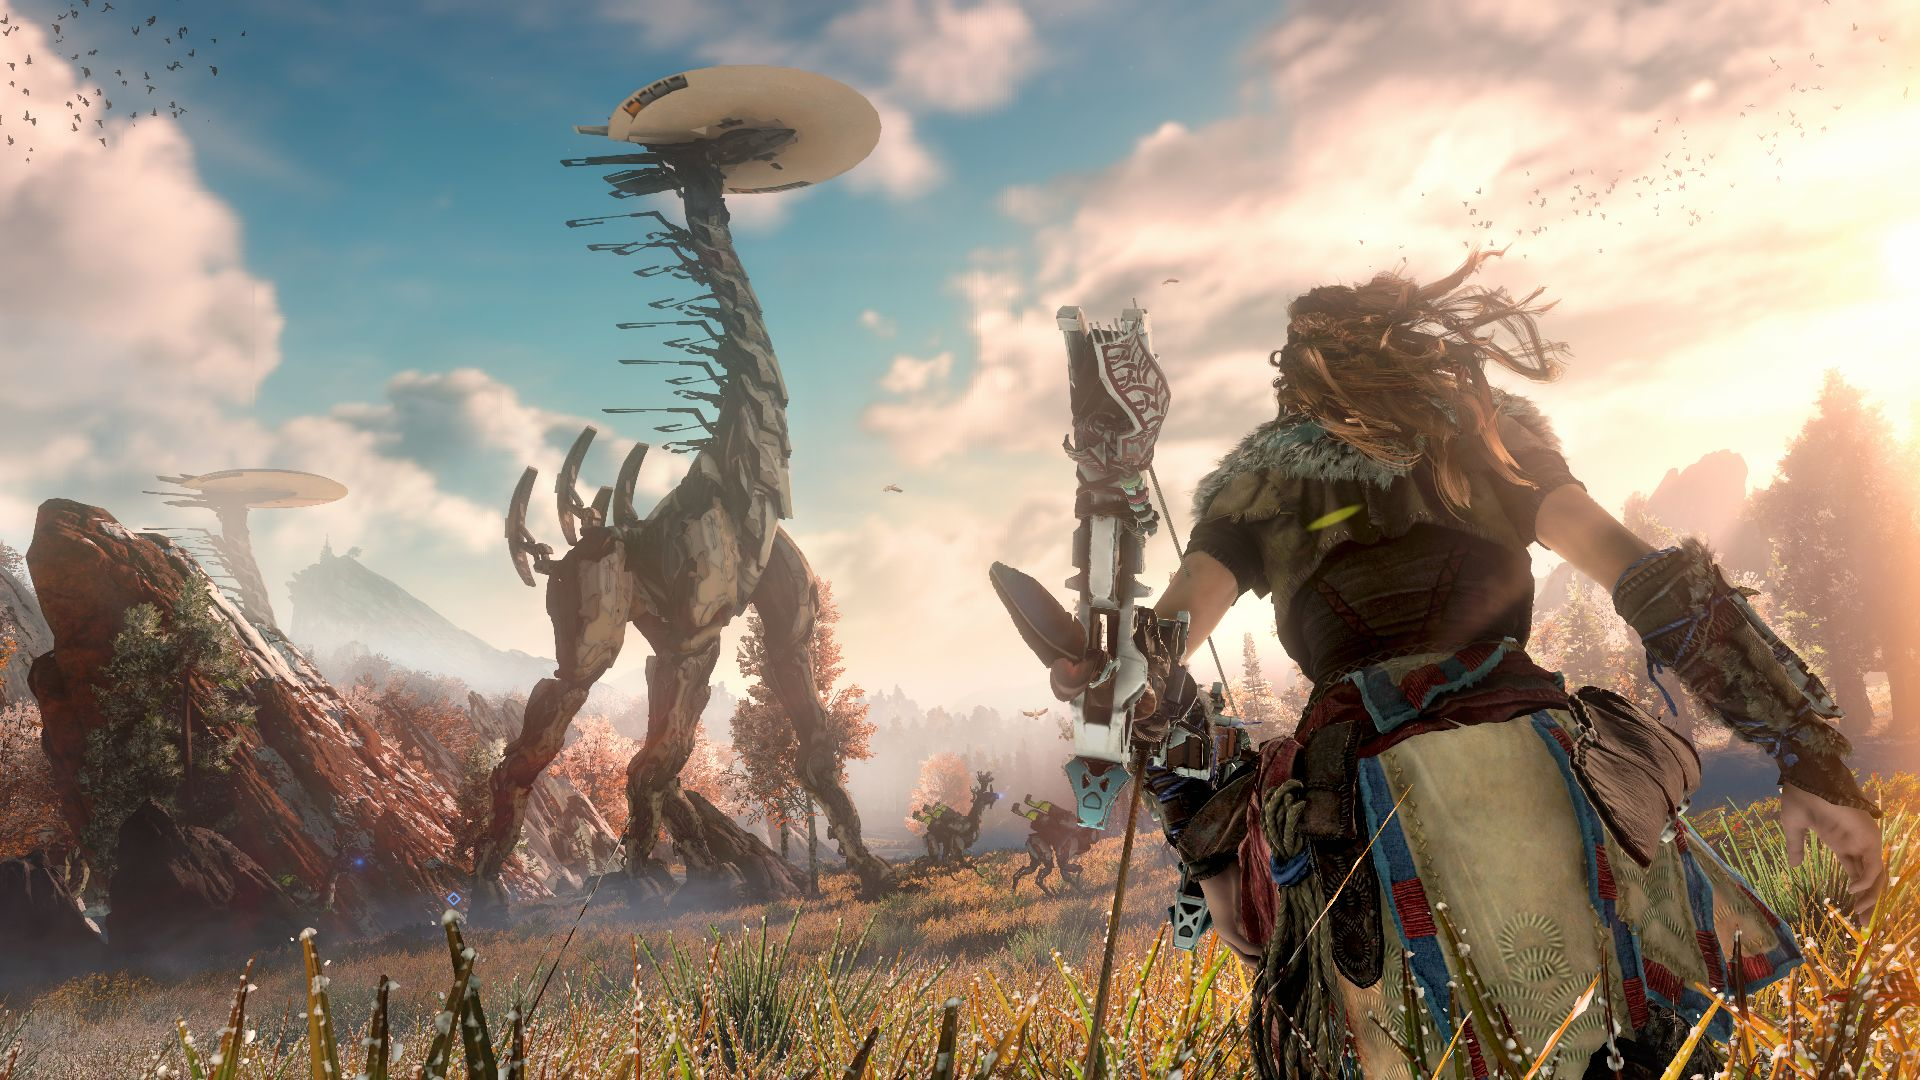 Horizon Zero Dawn Karte.Horizon Zero Dawn S Map Revealed Is Pretty Massive In Size